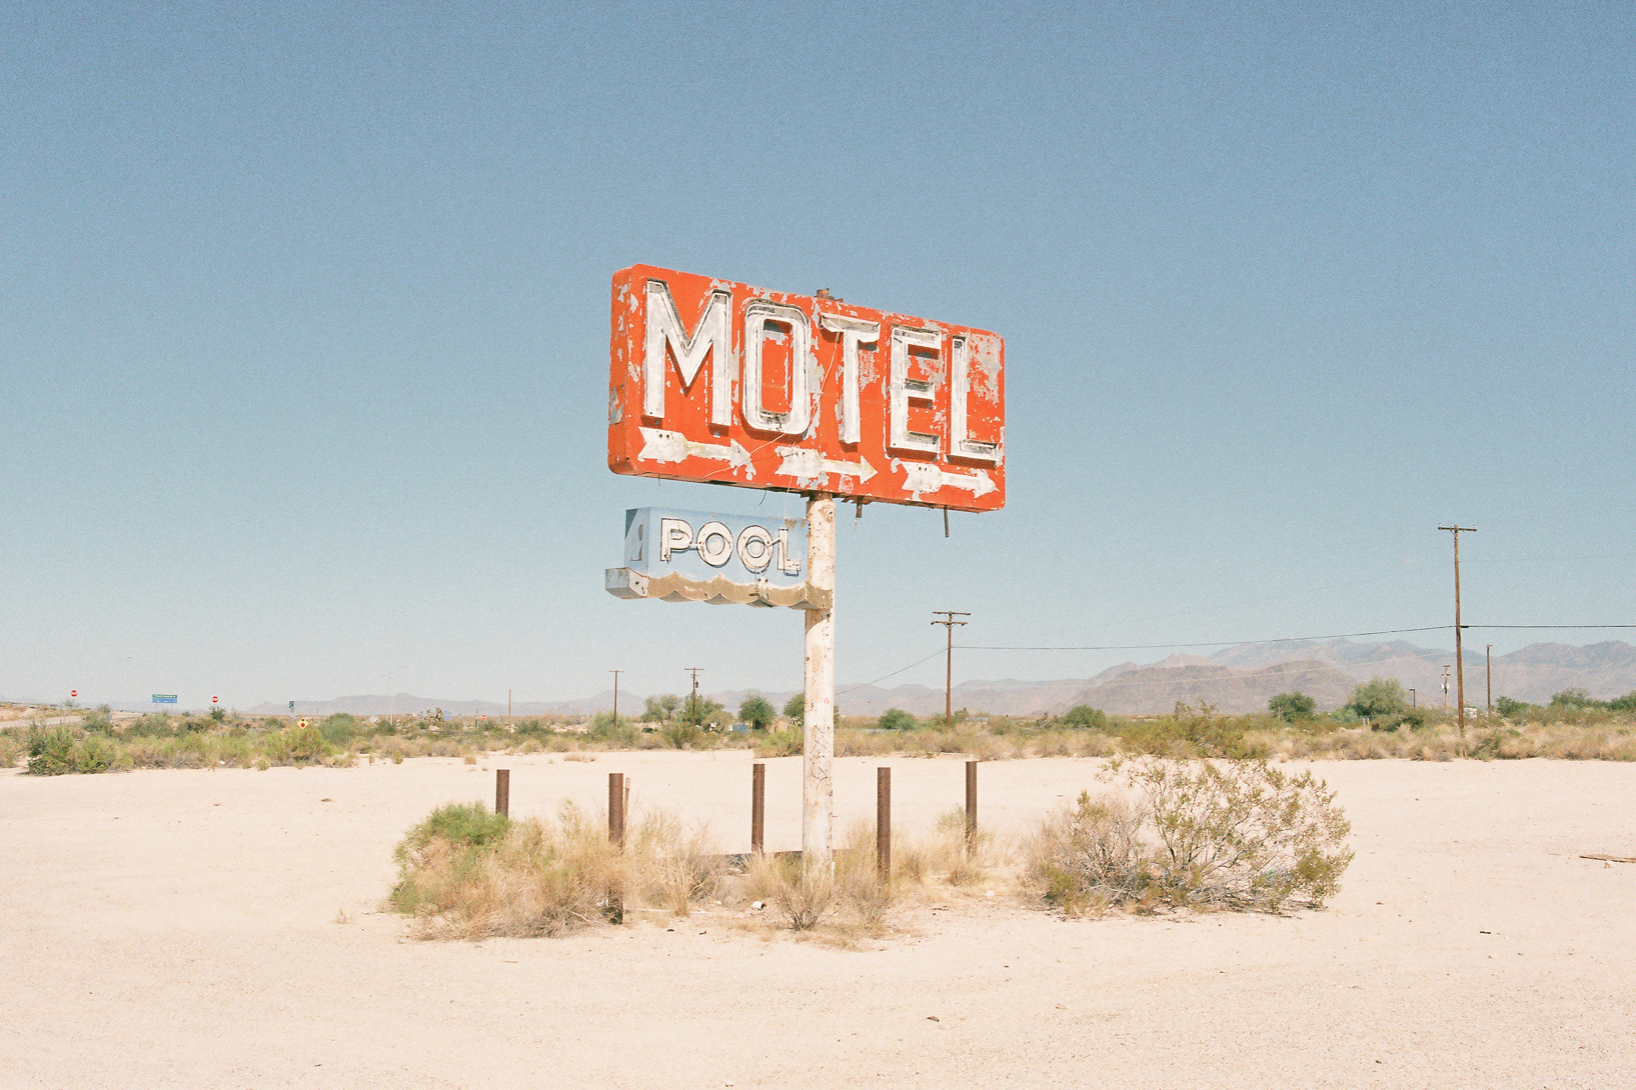 Photography By Kyle McDougall - Shop Prints Here